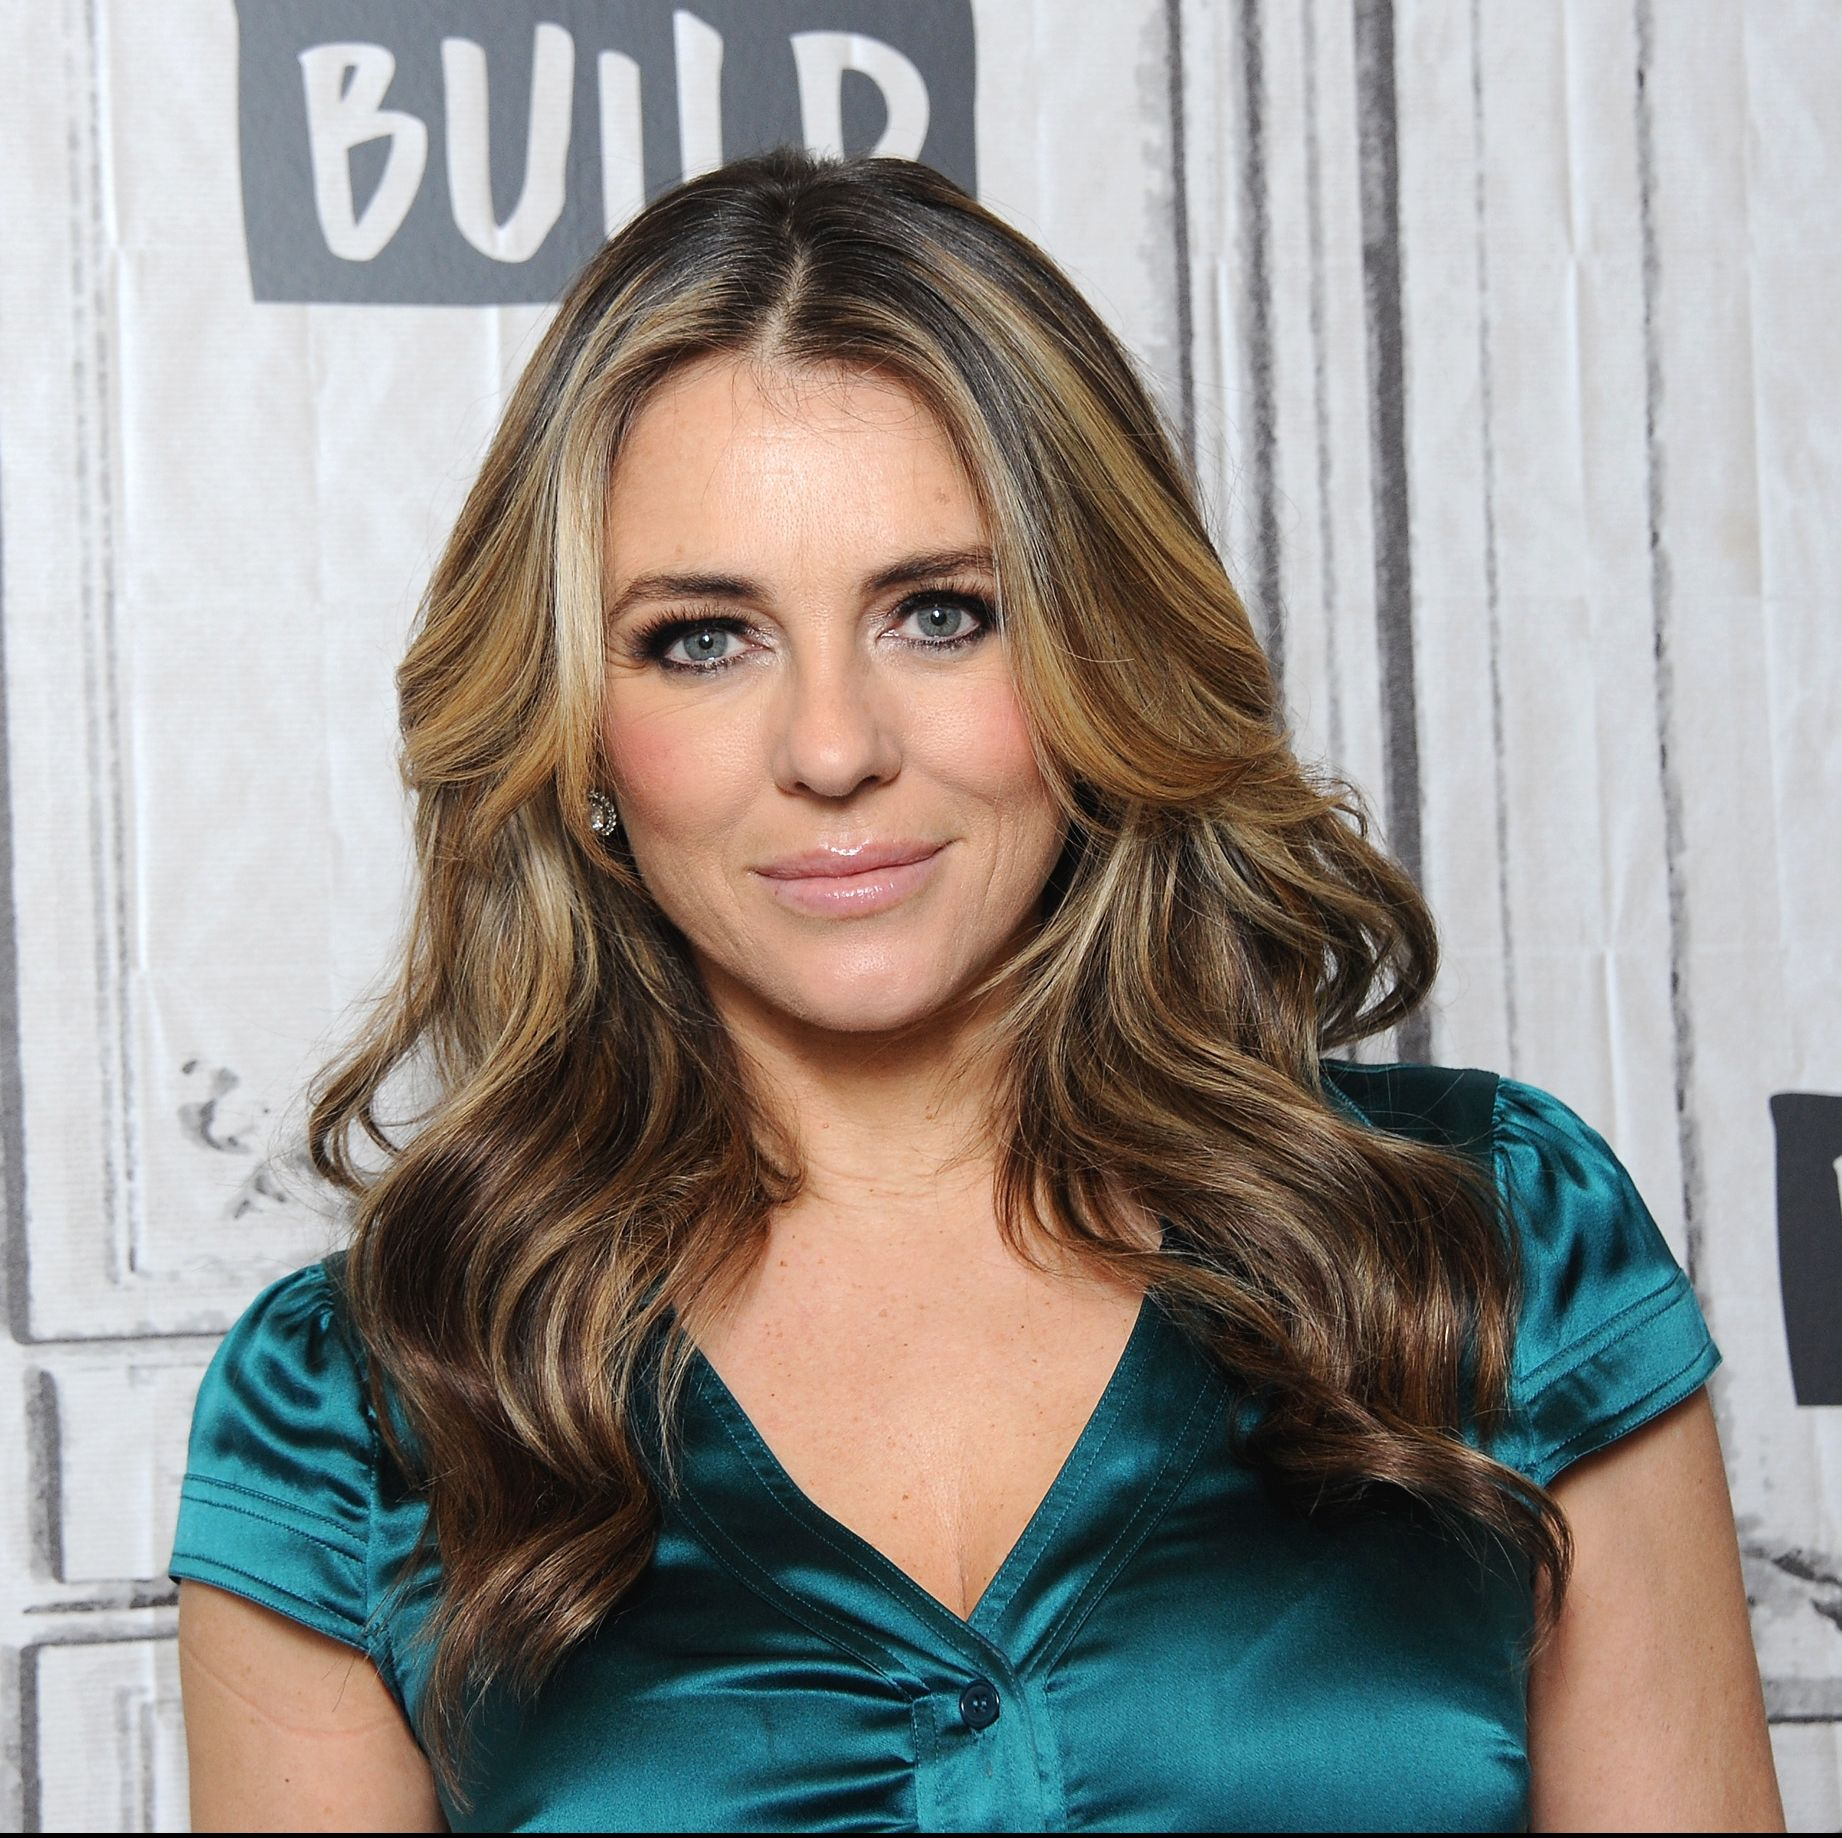 Elizabeth Hurley's Abs Look Incredible in This Bikini Photo She Posted on Instagram